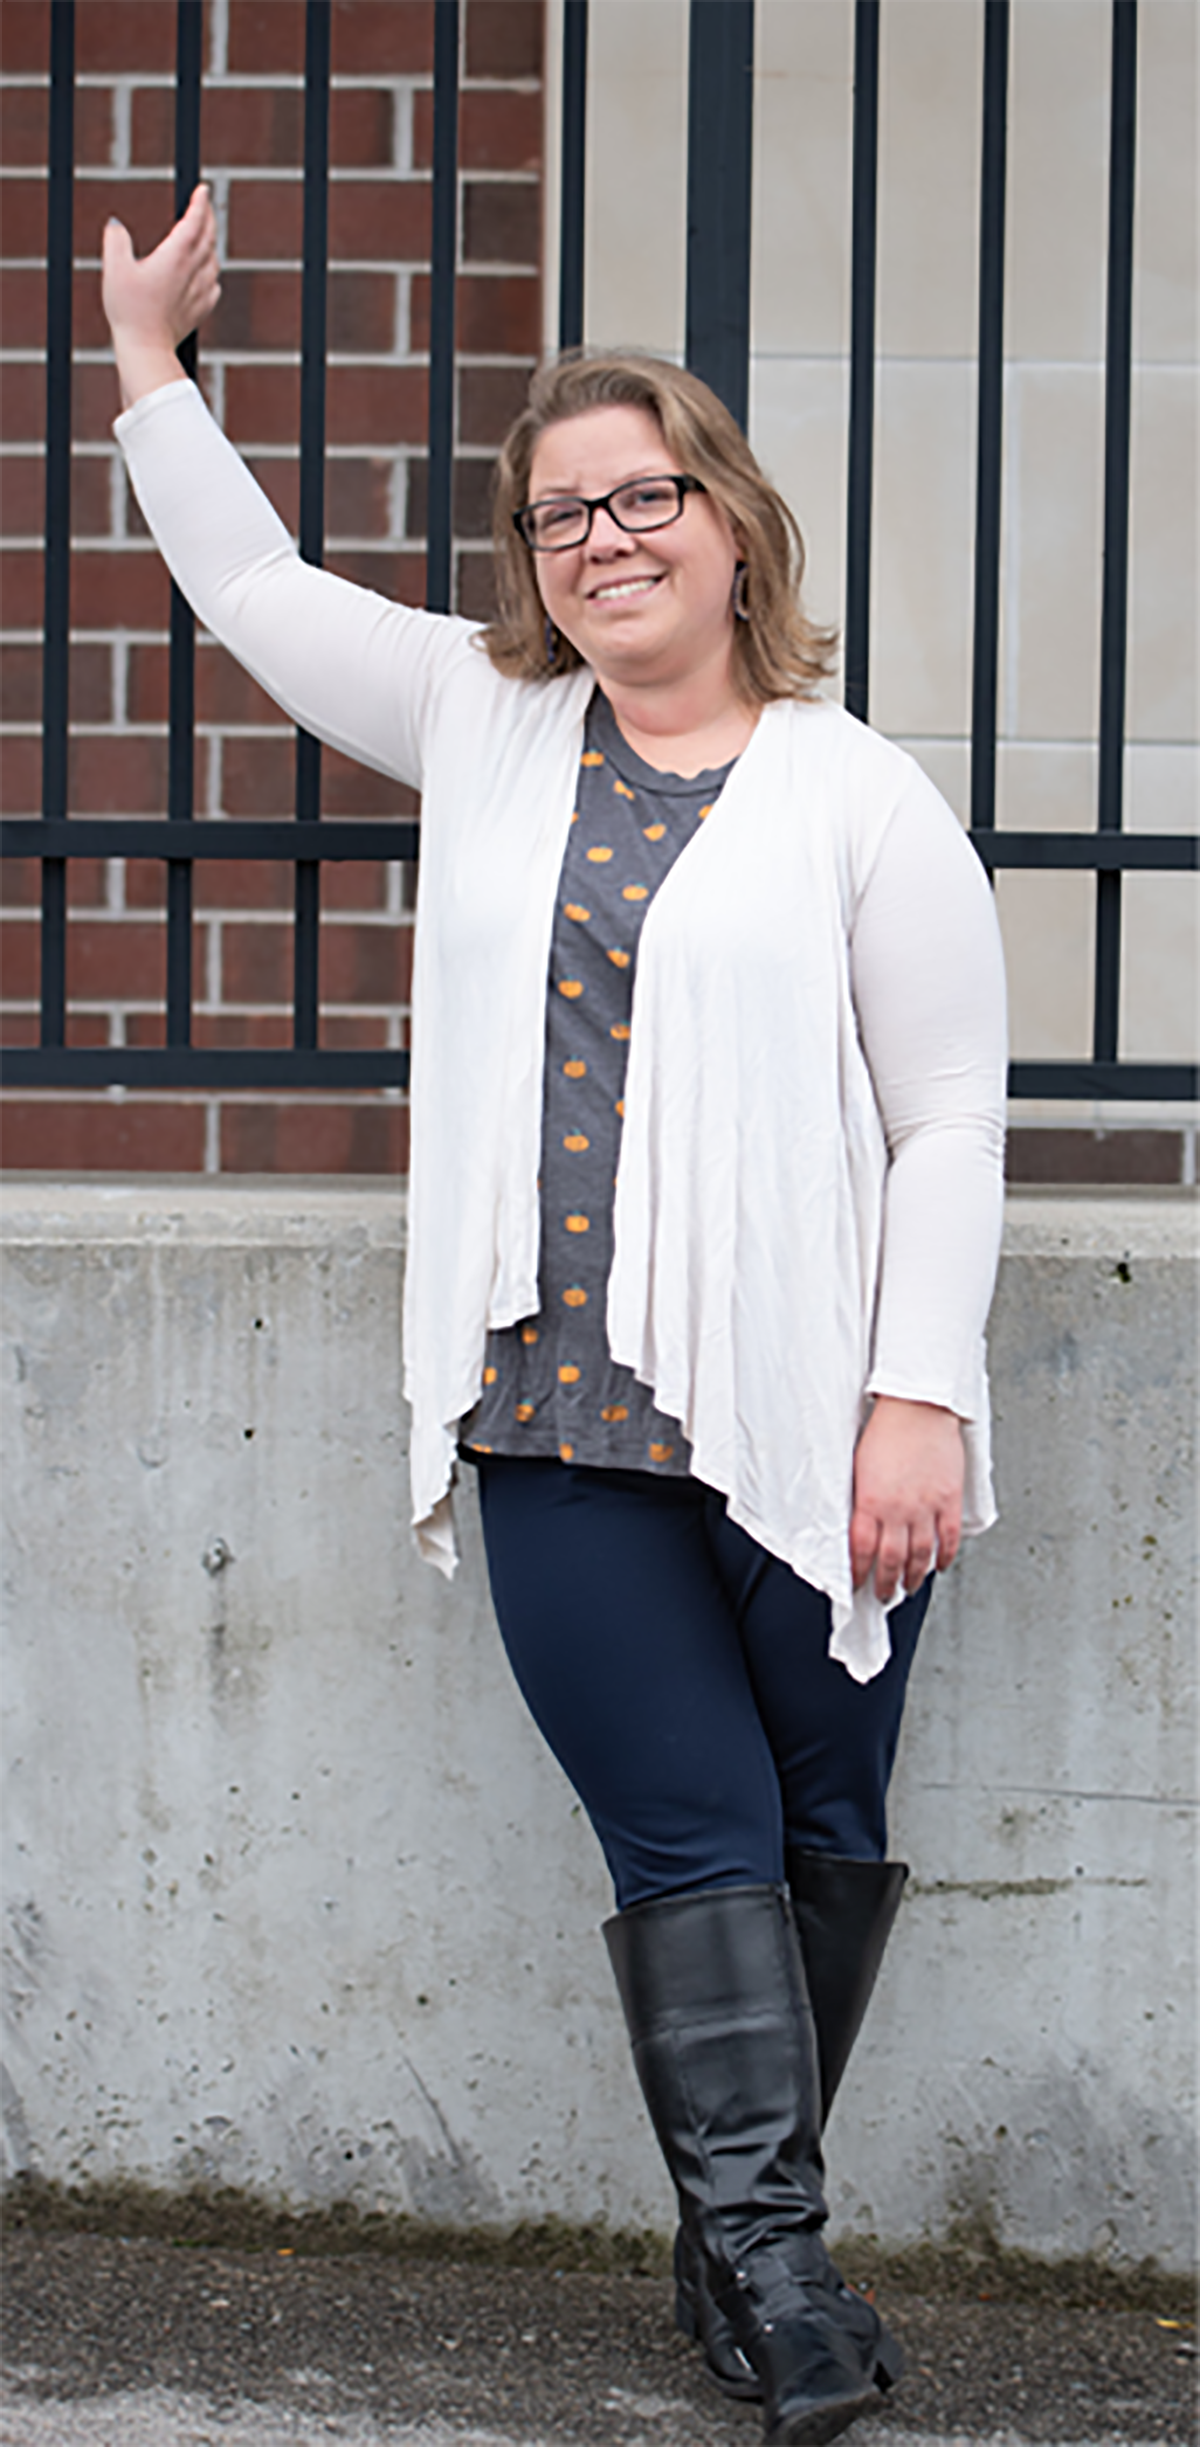 Holly McPherson, Owner of Virtual Office Agent